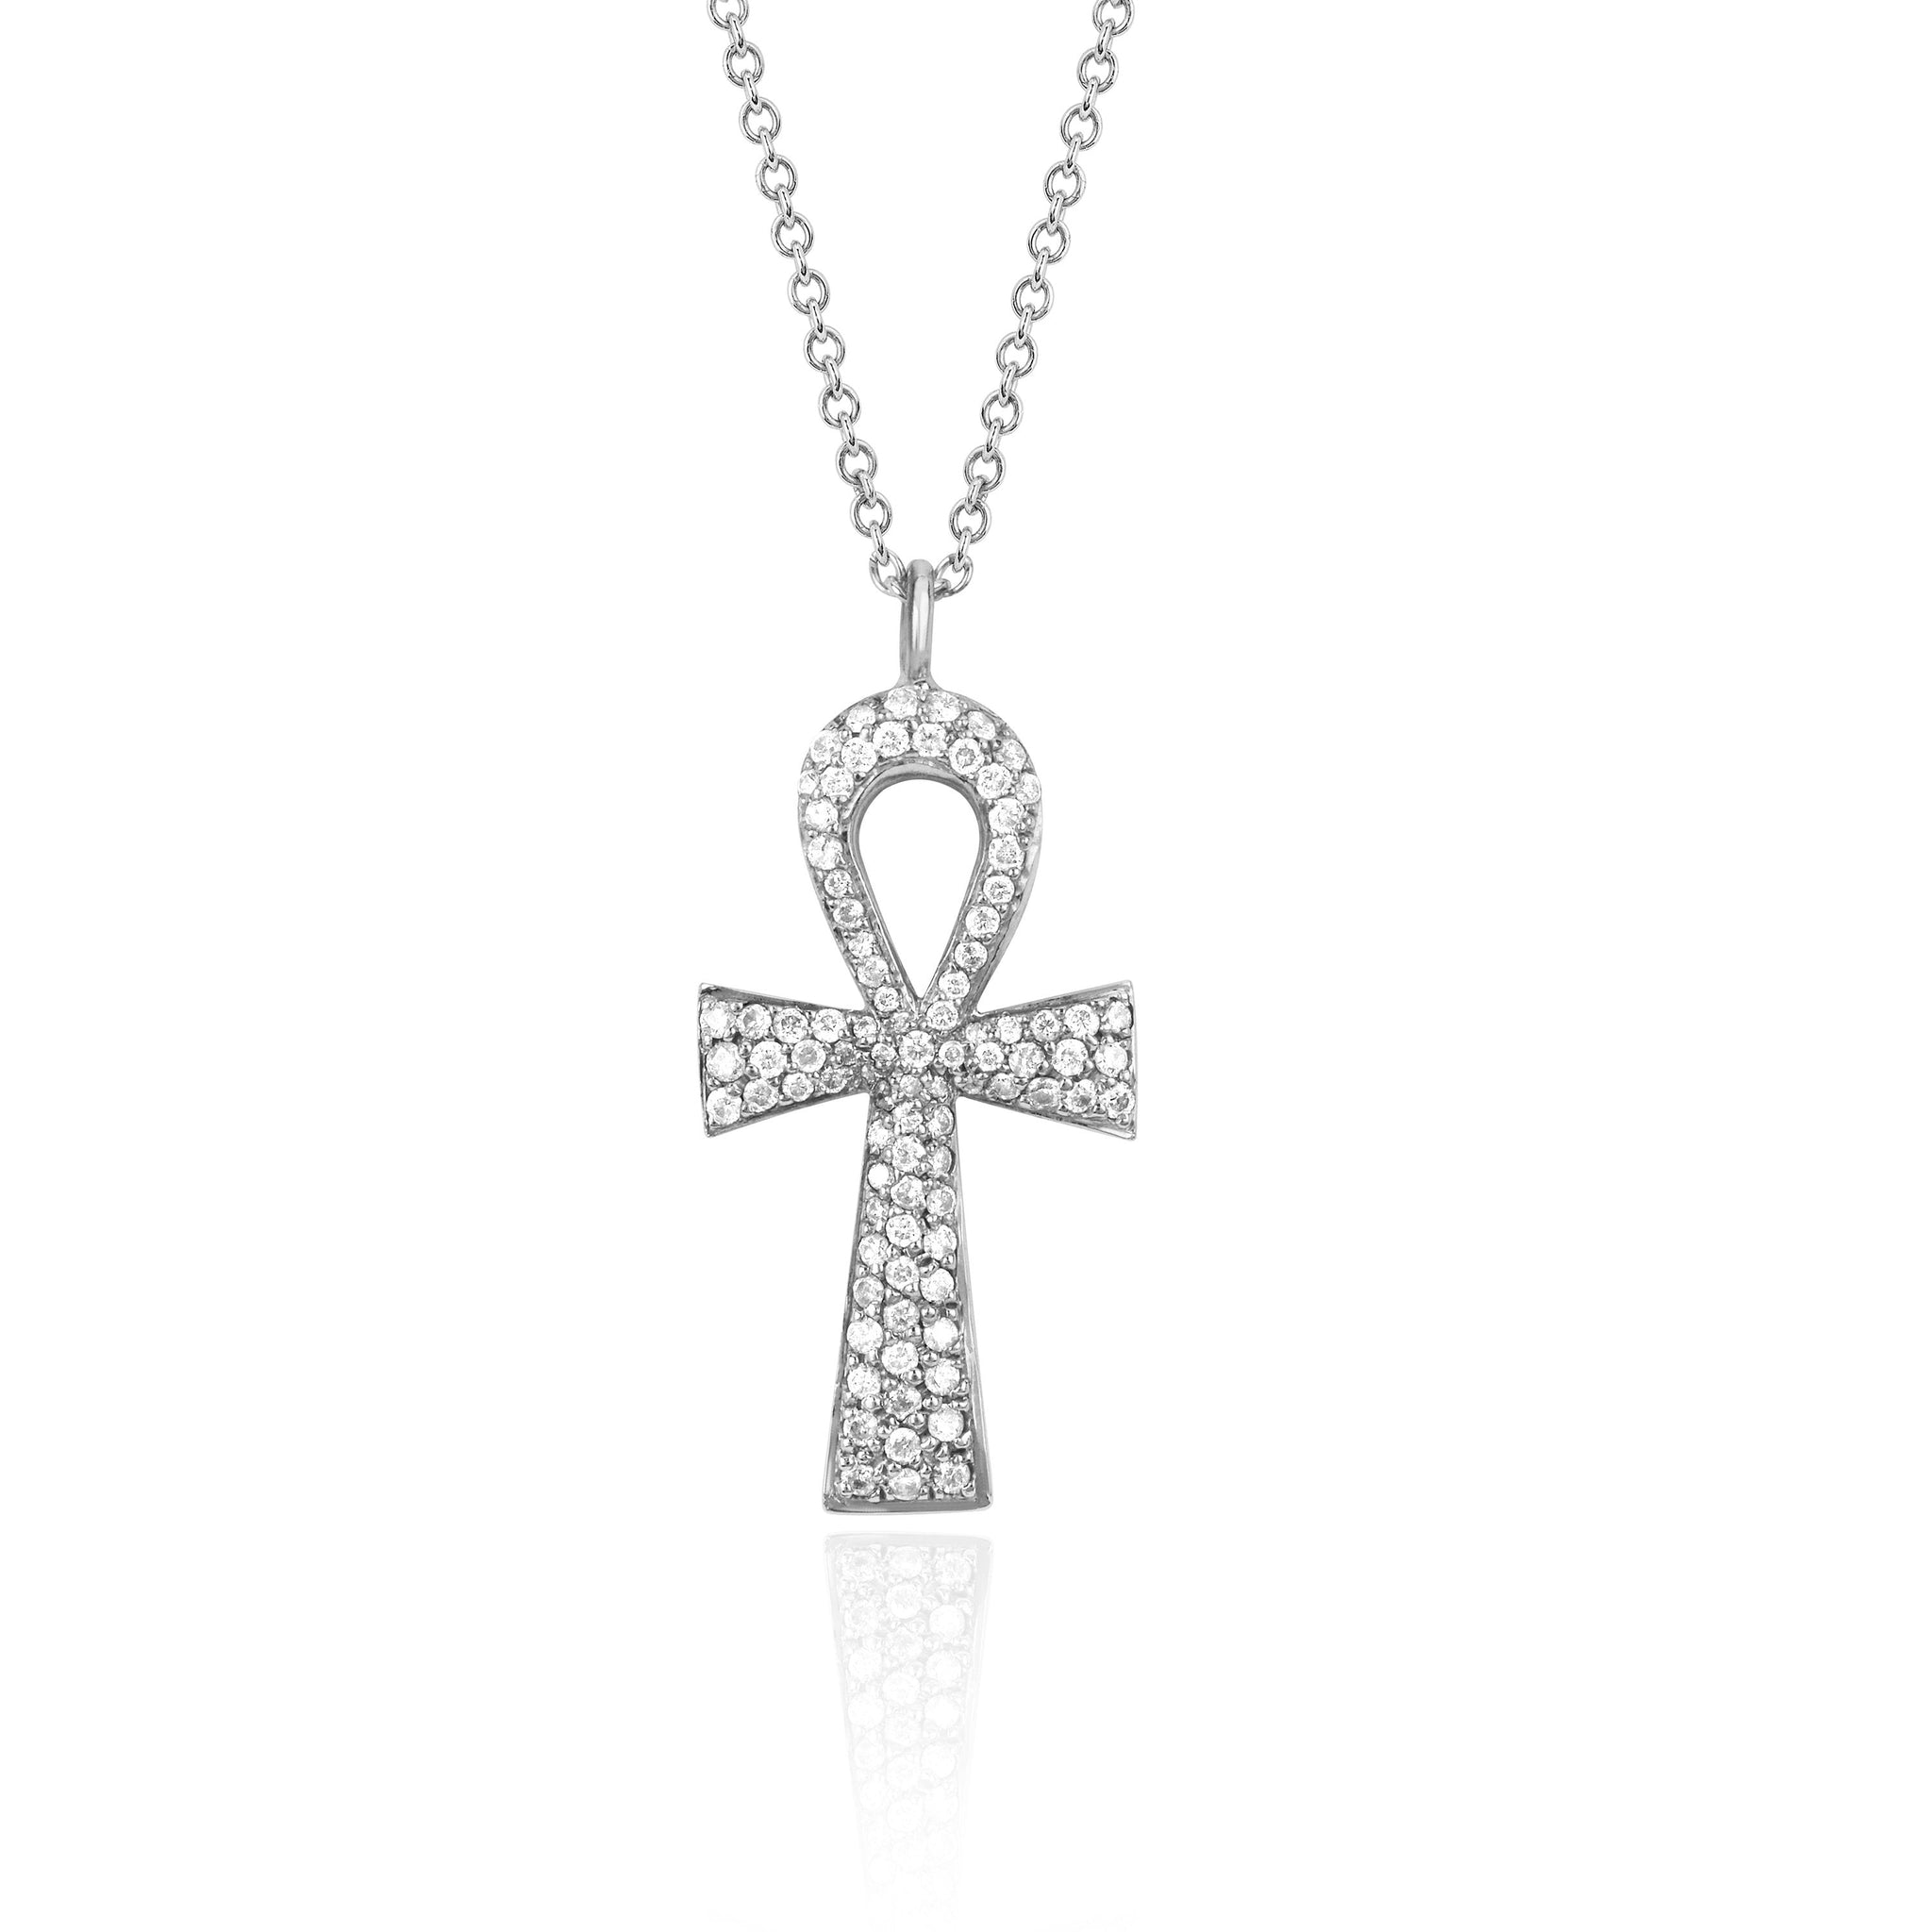 ankh watches symbolic of product handmade free over eye silver orders shipping overstock egyptian horus on jewelry sterling thailand necklace cross